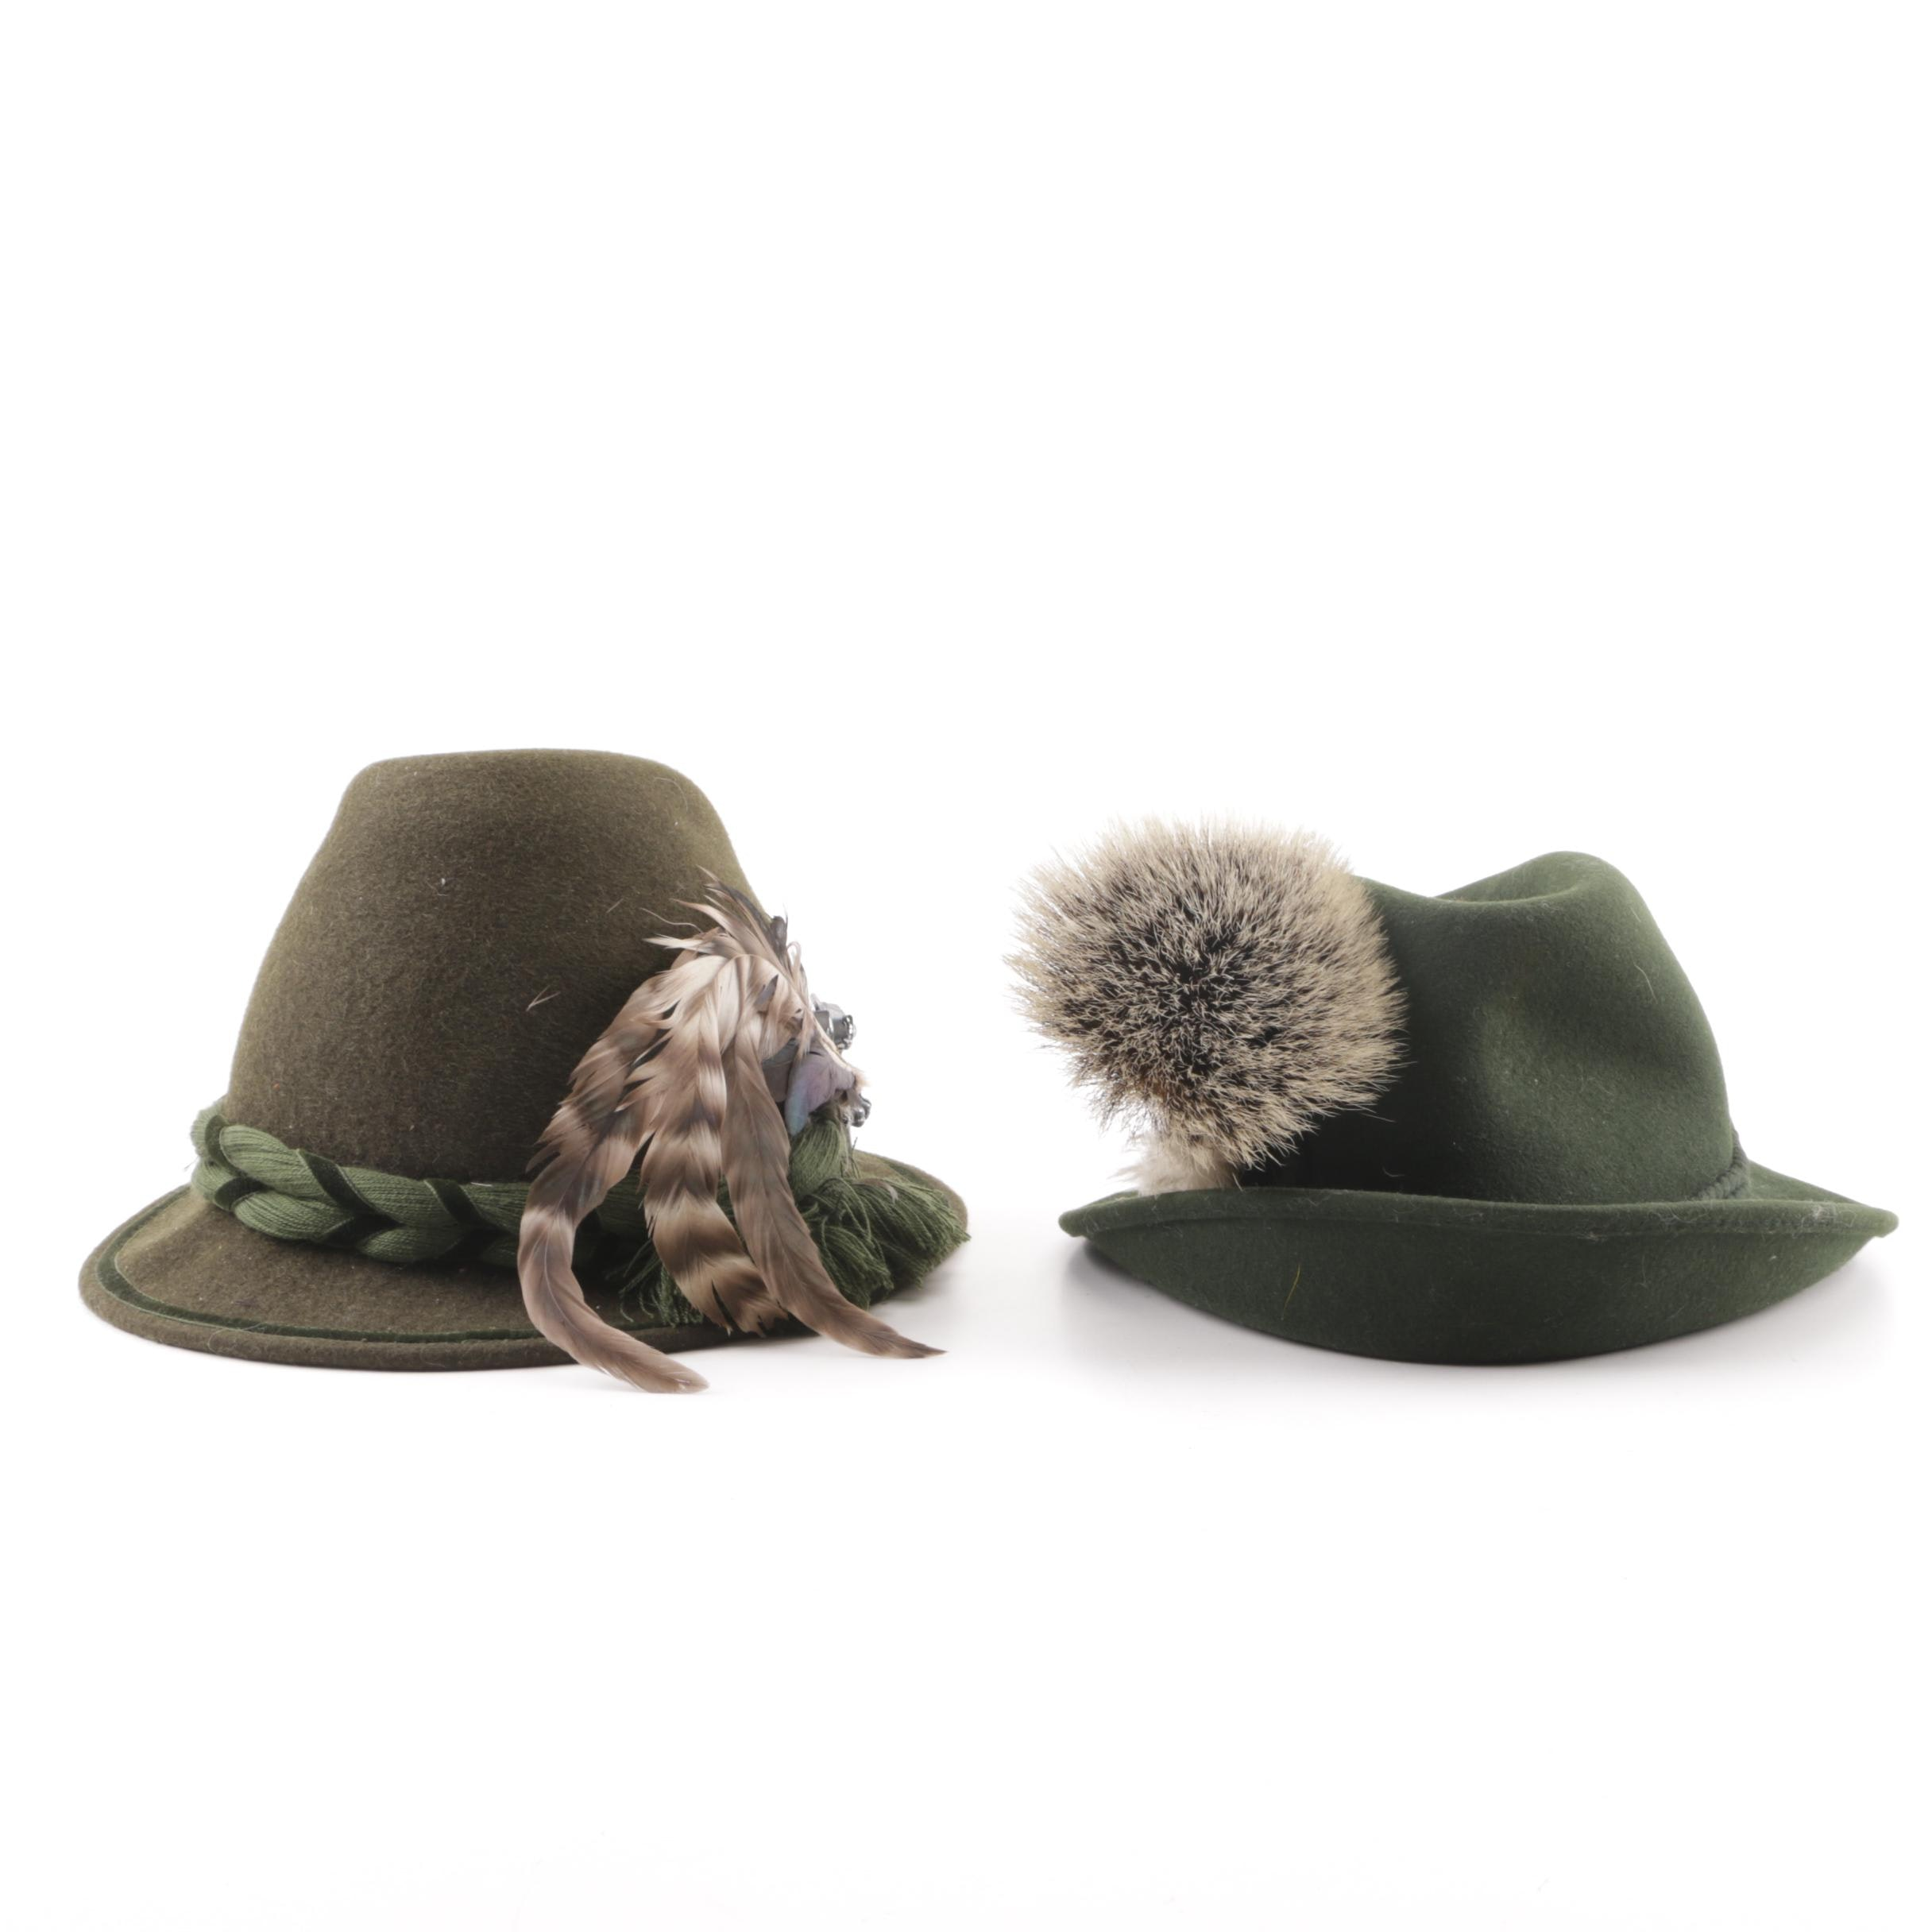 Vintage Austrian Green Felt Tyrolean Hats with Embellishments